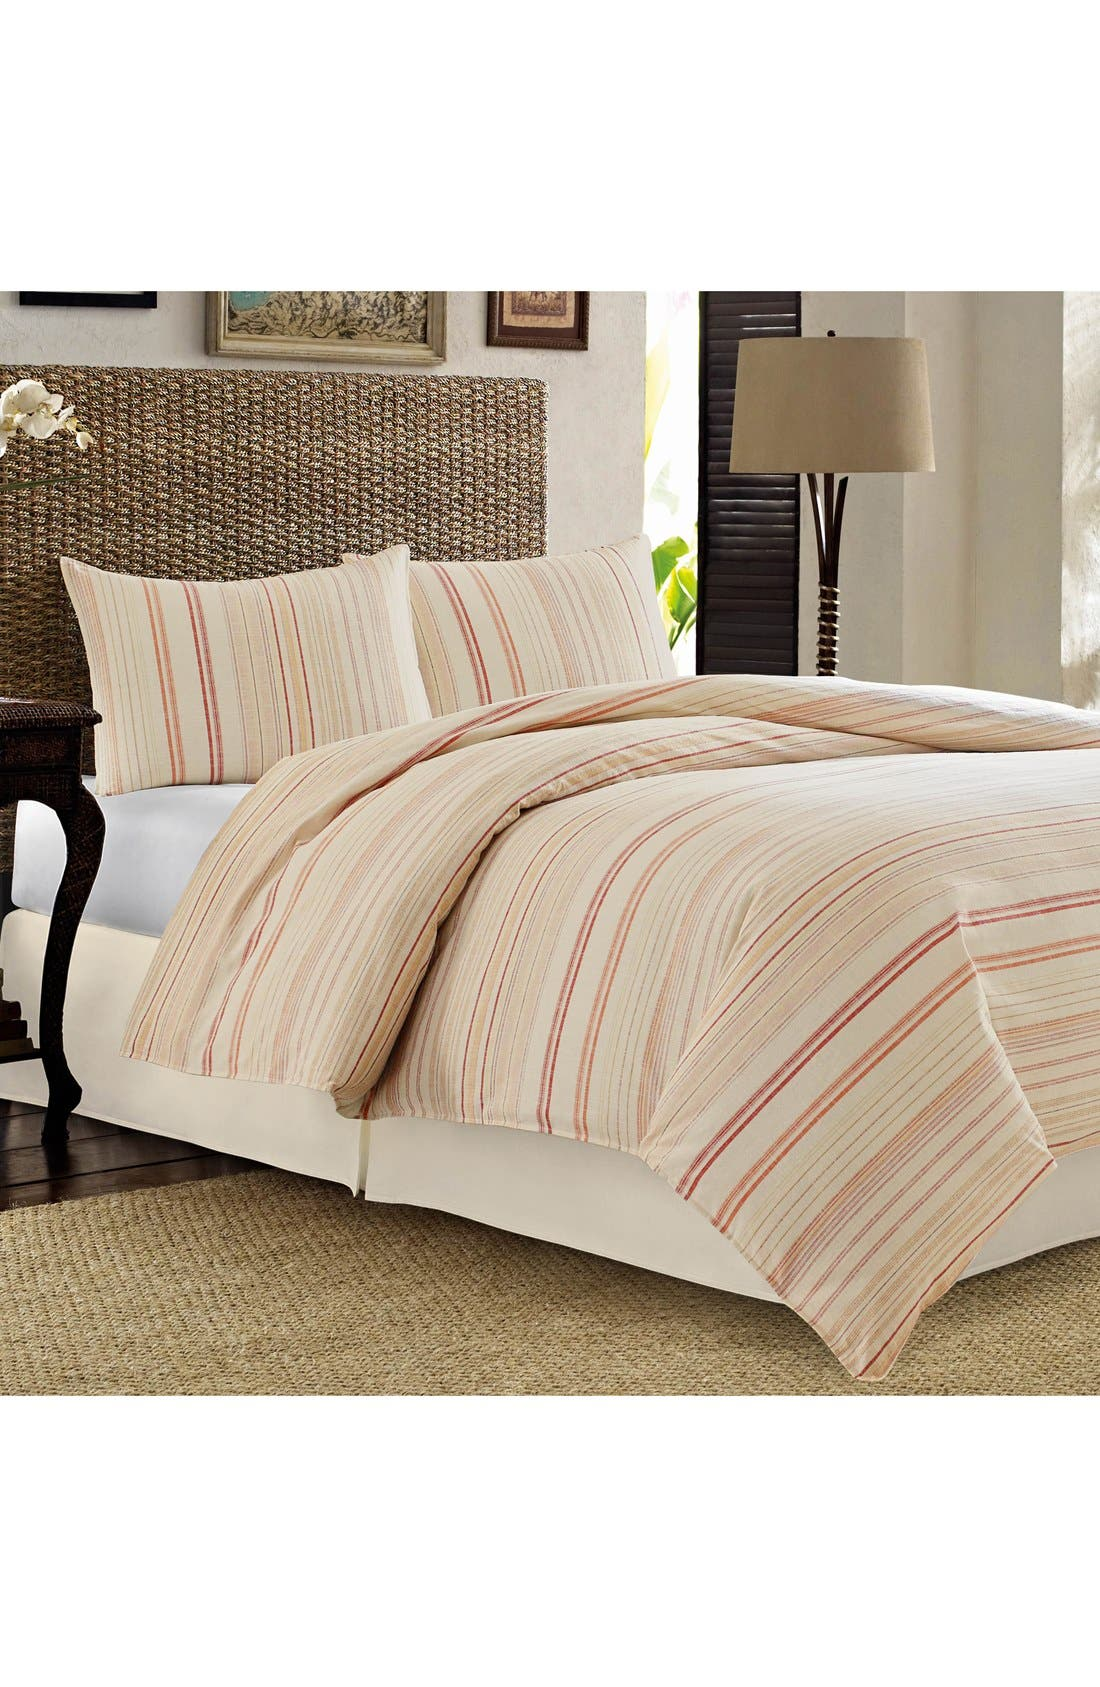 Tommy Bahama La Scala Breezer Comforter, Sham & Bed Skirt Set